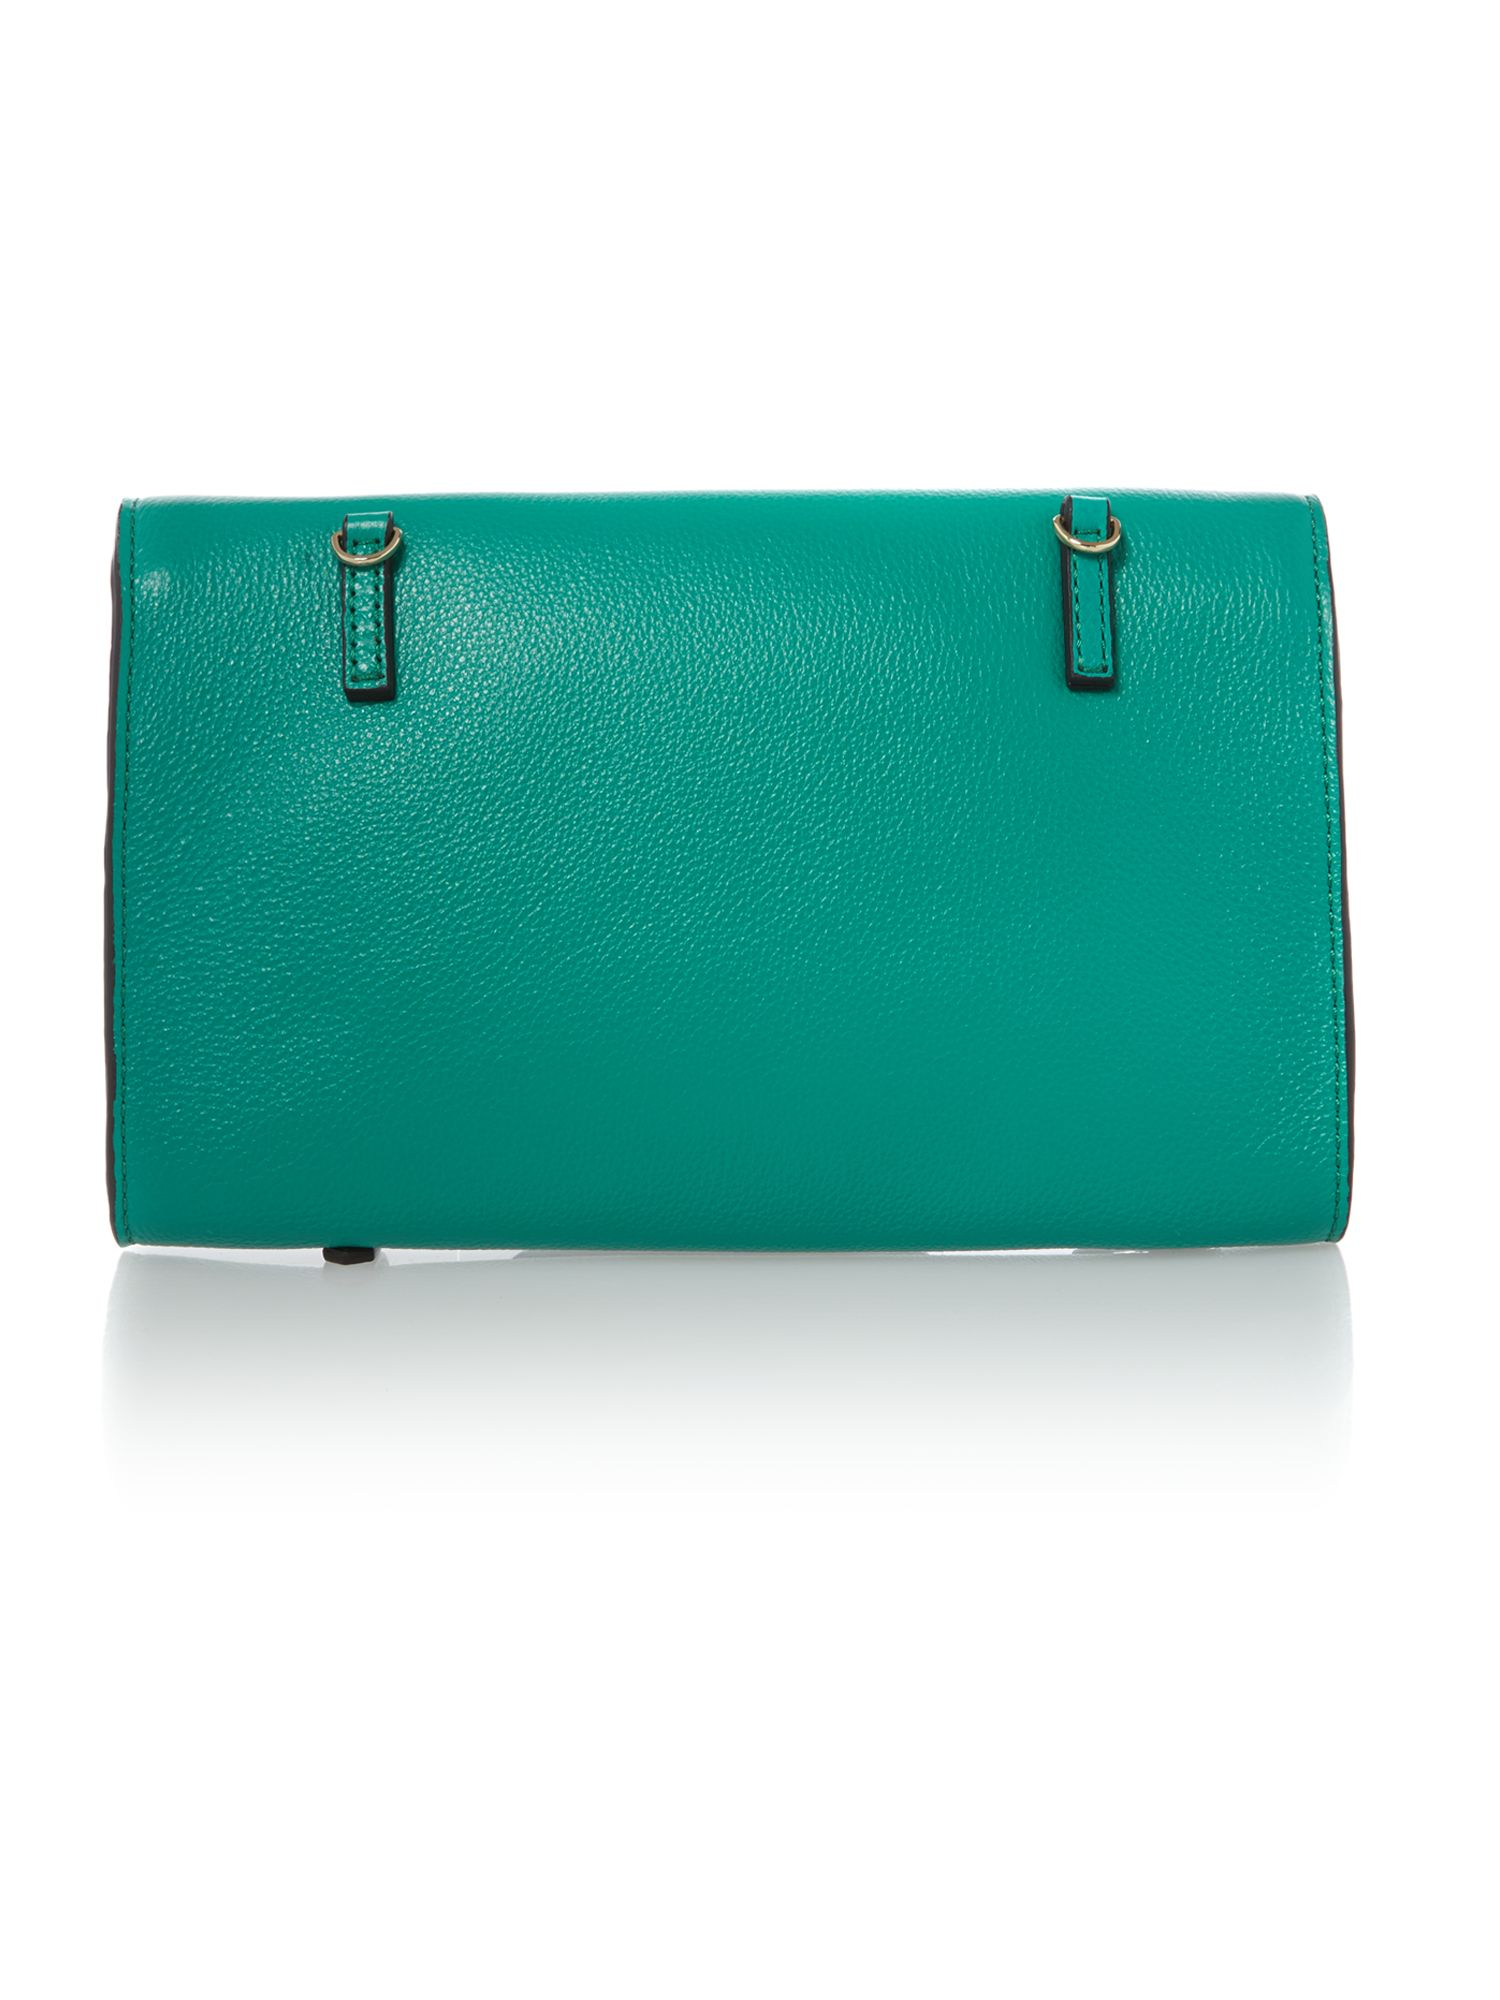 Green small cross body bag